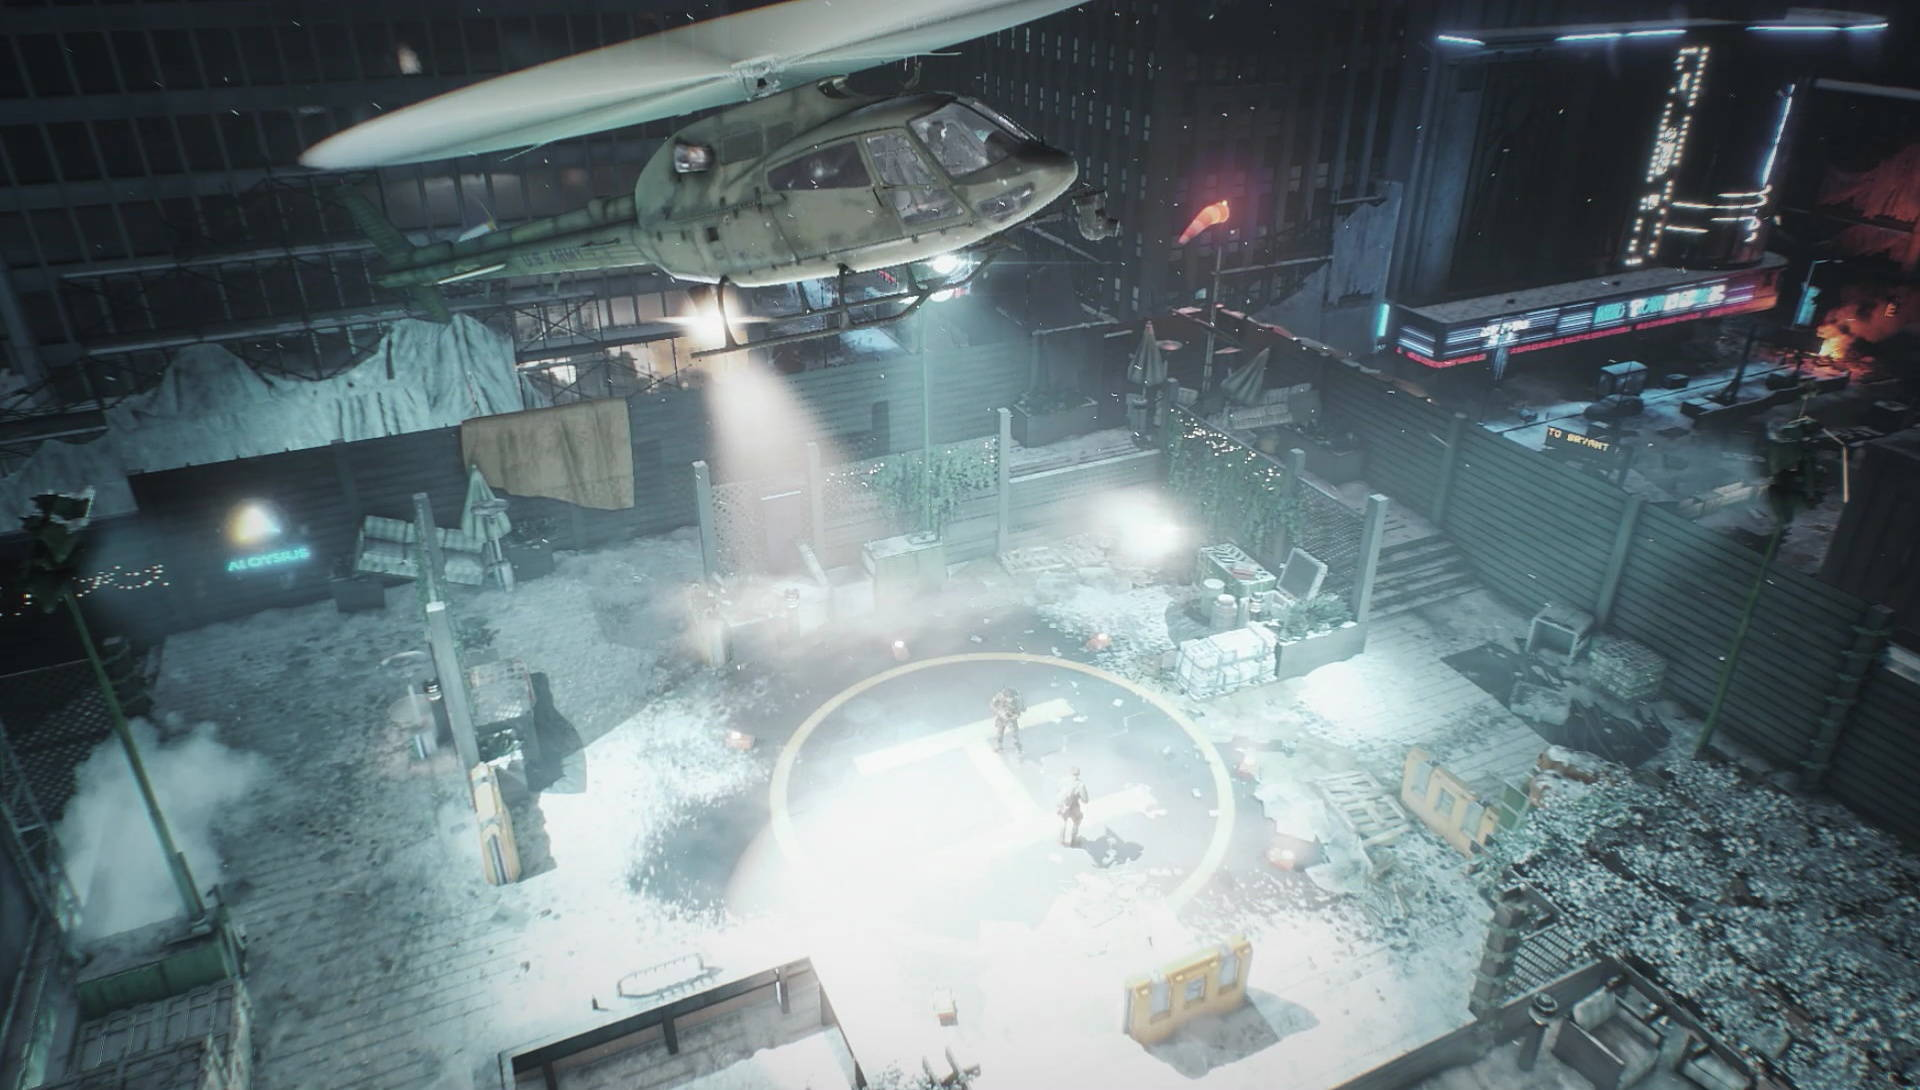 tomclancysthedivision_conflictscreens2_0020